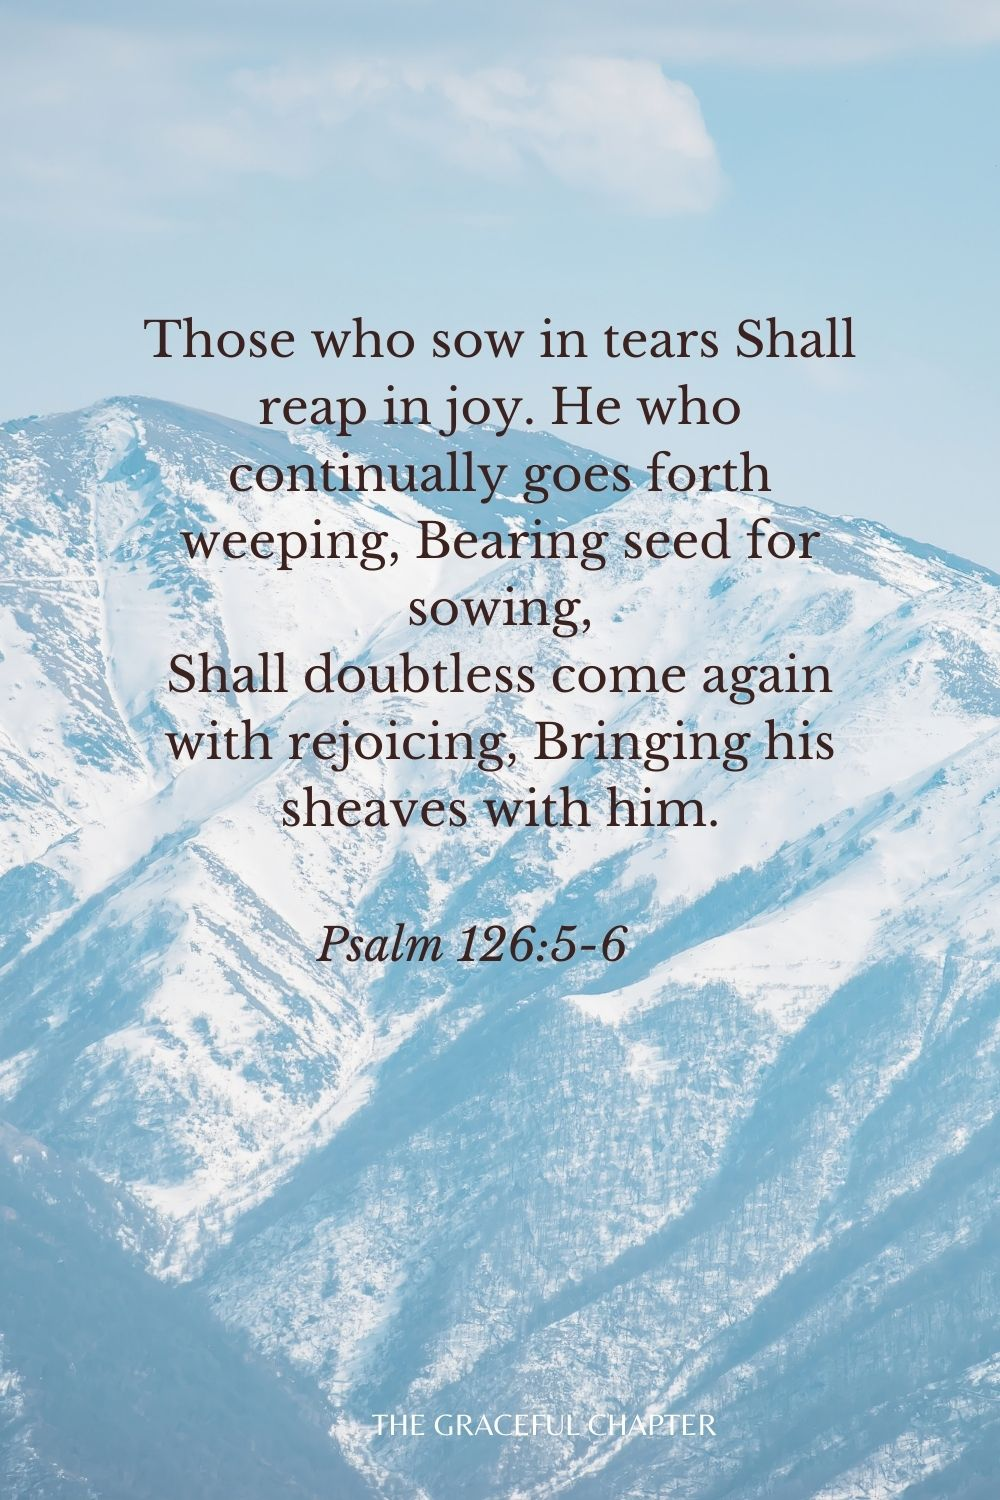 Those who sow in tears Shall reap in joy. He who continually goes forth weeping, Bearing seed for sowing, Shall doubtless come again with rejoicing, Bringing his sheaves with him. Psalm 126:5-6